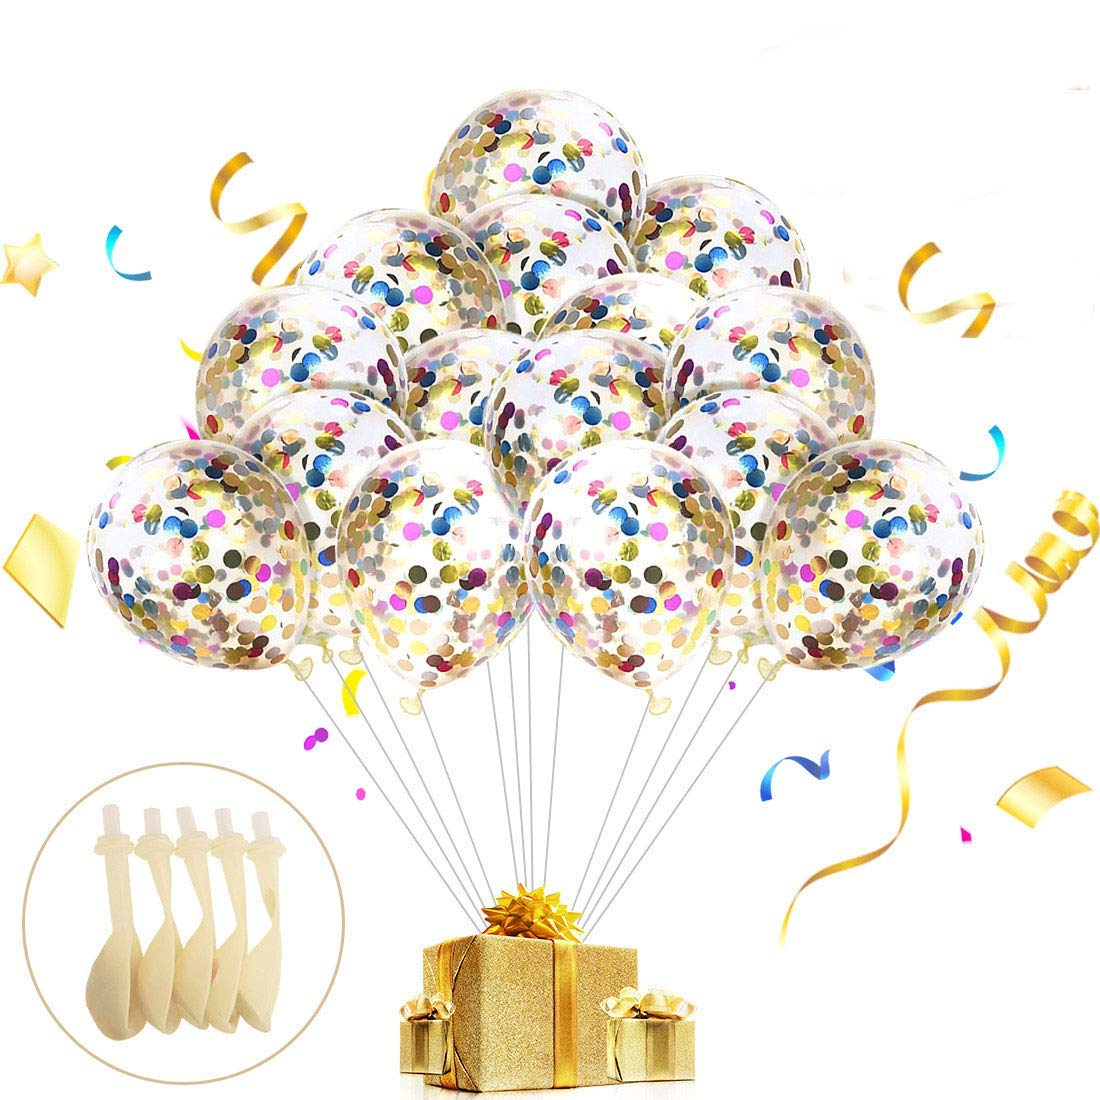 30Pcs Multicolor Confetti Balloons 12 Inches Latex Party Balloons With Paper Confetti Dots For Wedding Proposal Christmas Birthday Party Decorations (Multicolor Confetti Balloons,Mouth Piece Included)